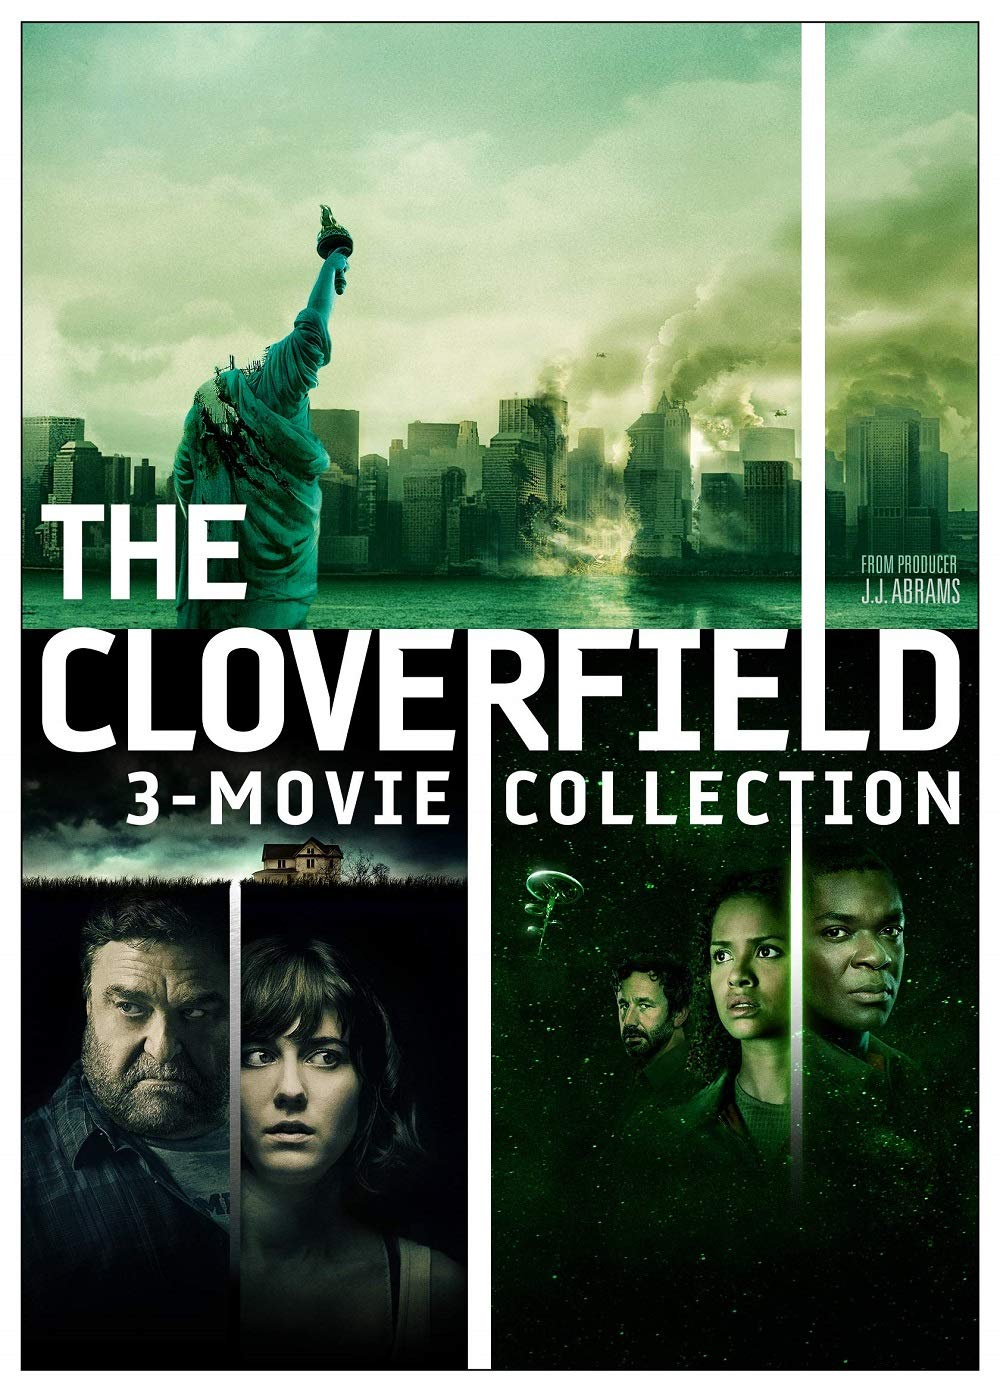 Amazon.com: Cloverfield 3-Movie Collection: Chris O'Dowd, Zhang ...